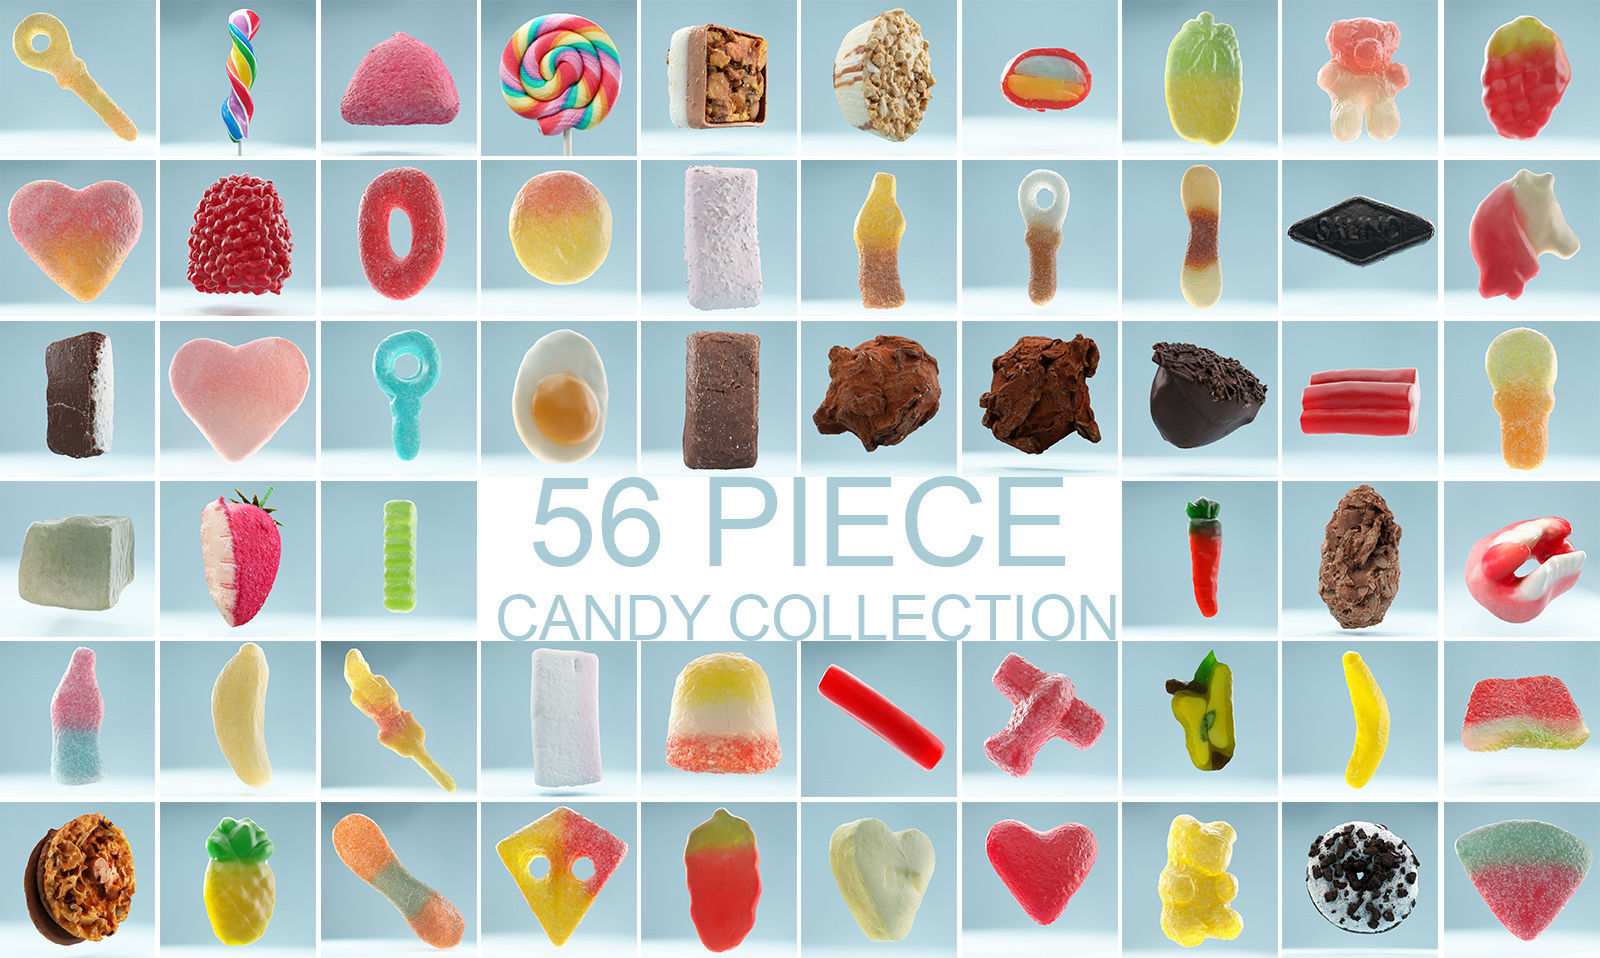 56 Piece Candy Collection